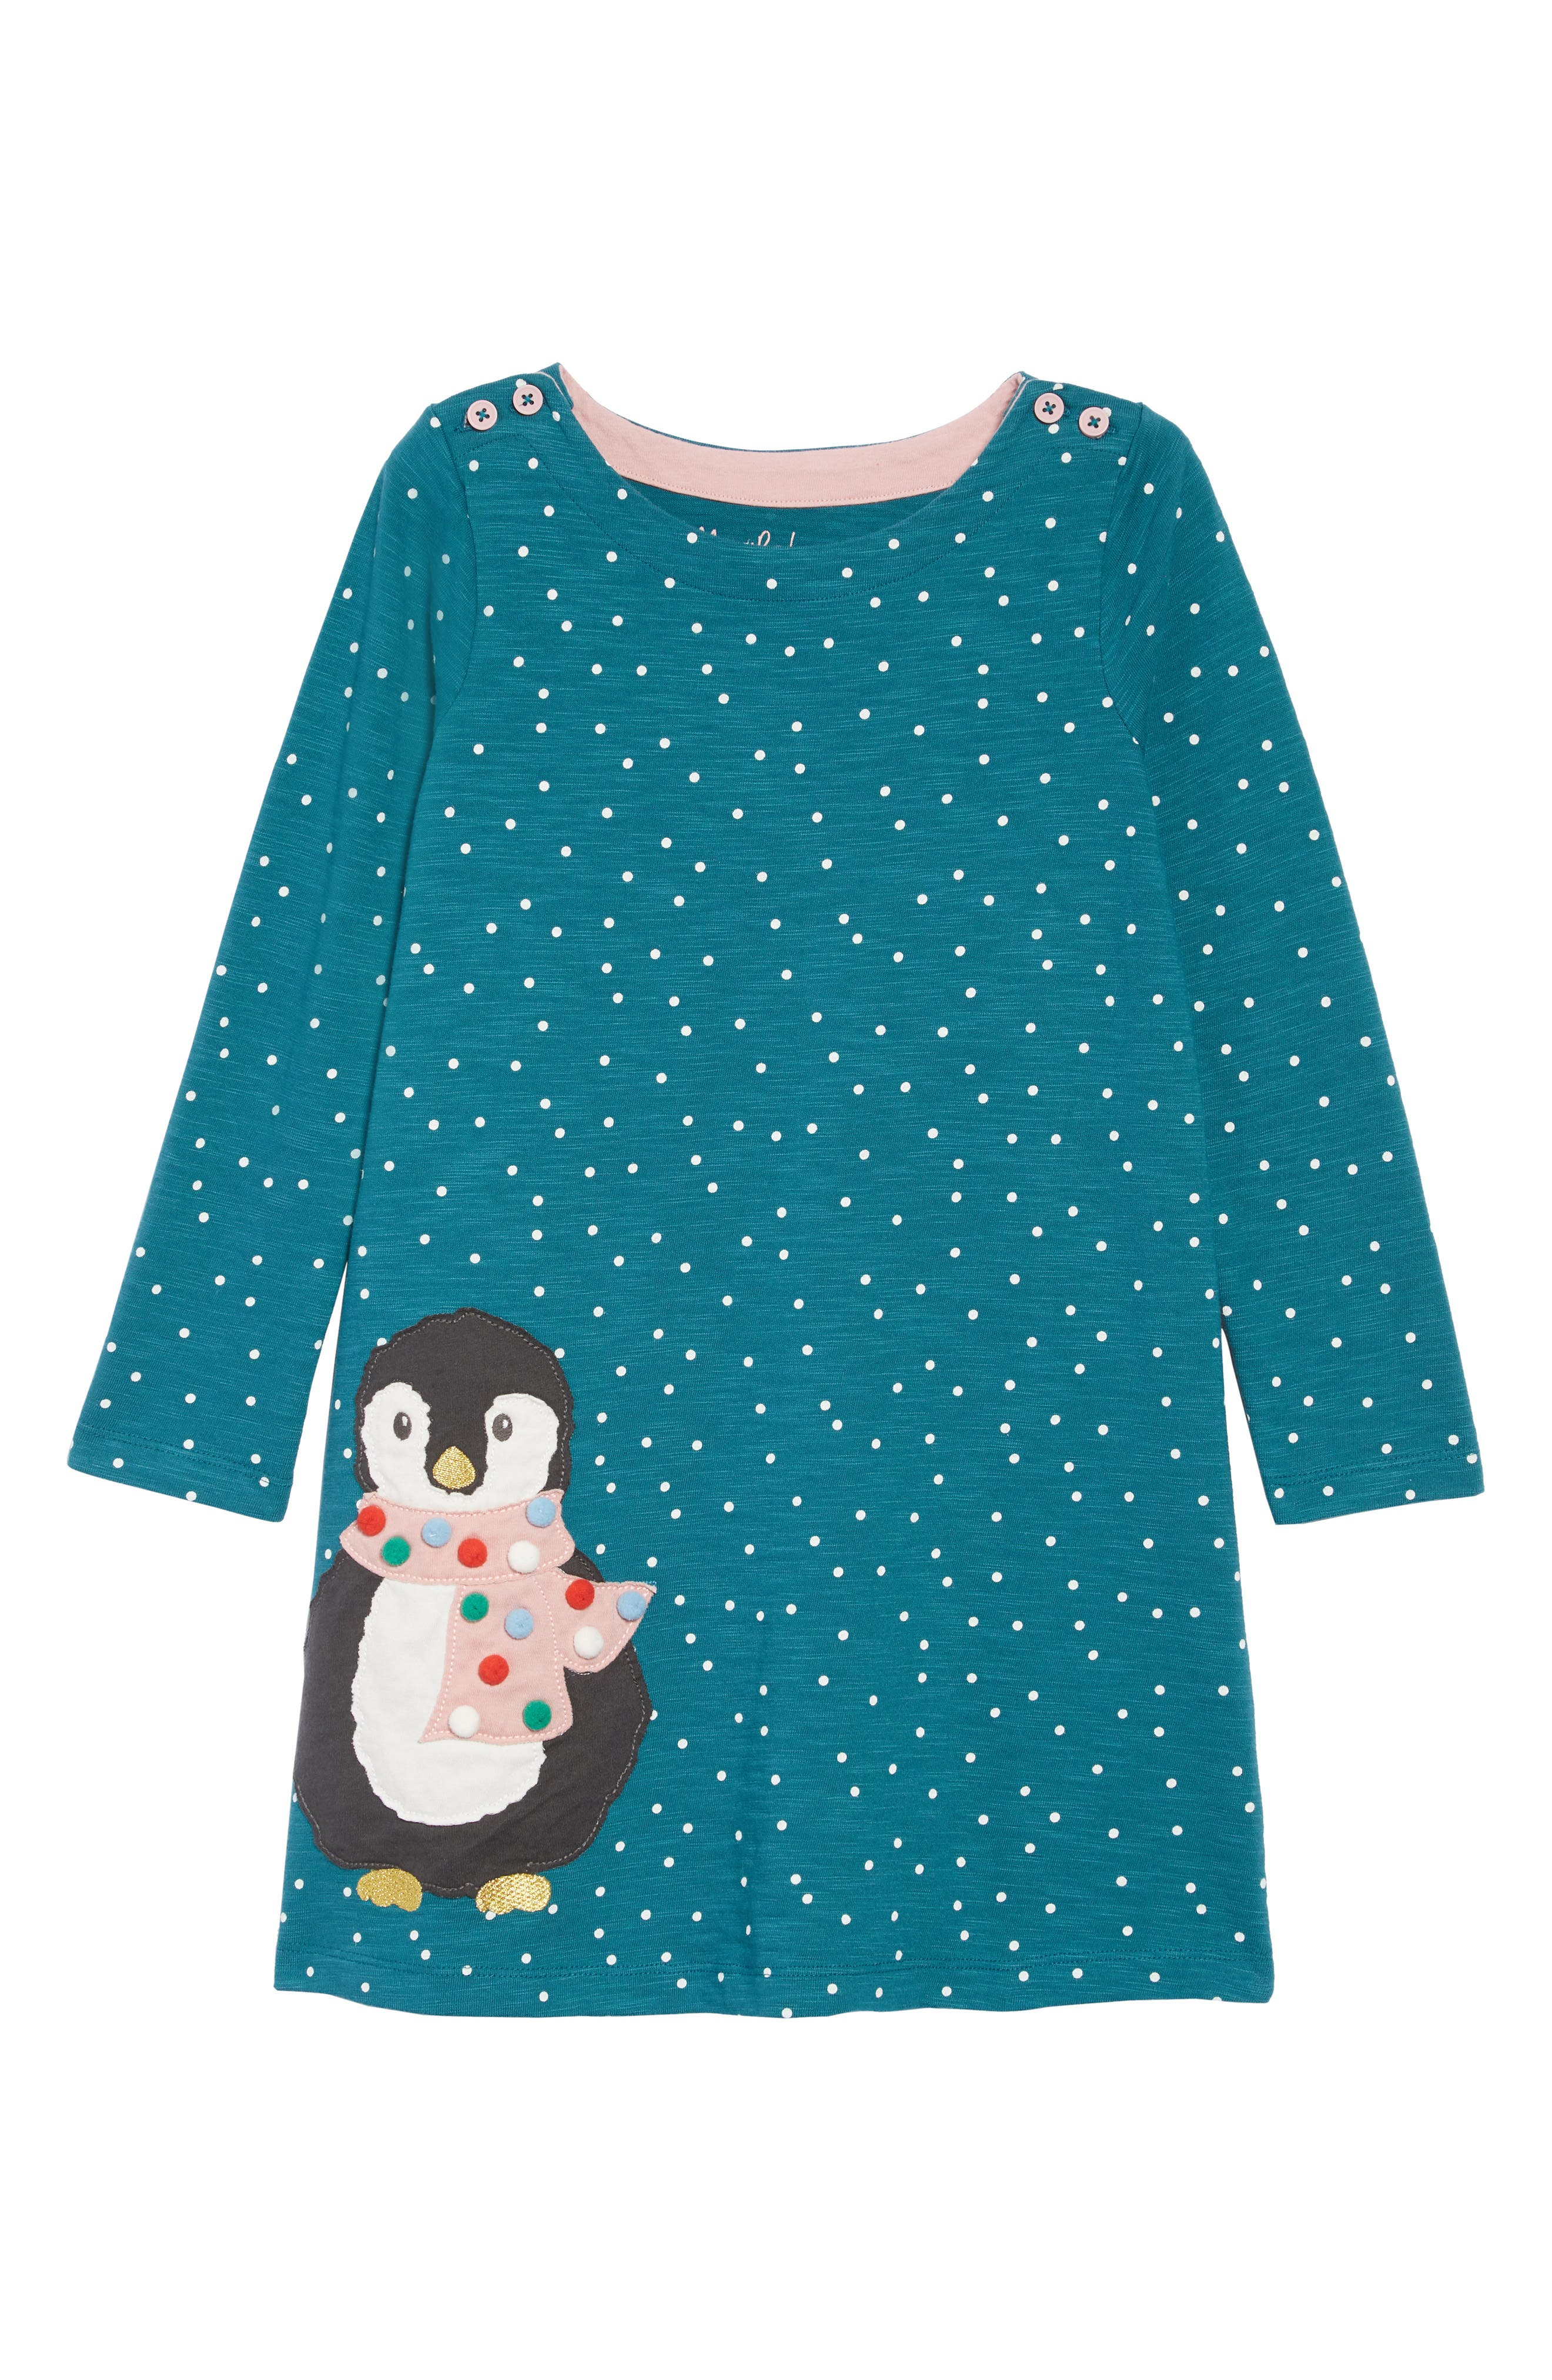 Mini Boden Spotty Animal Appliqué Dress,                         Main,                         color, DGR DRAKE GREEN PENGUIN